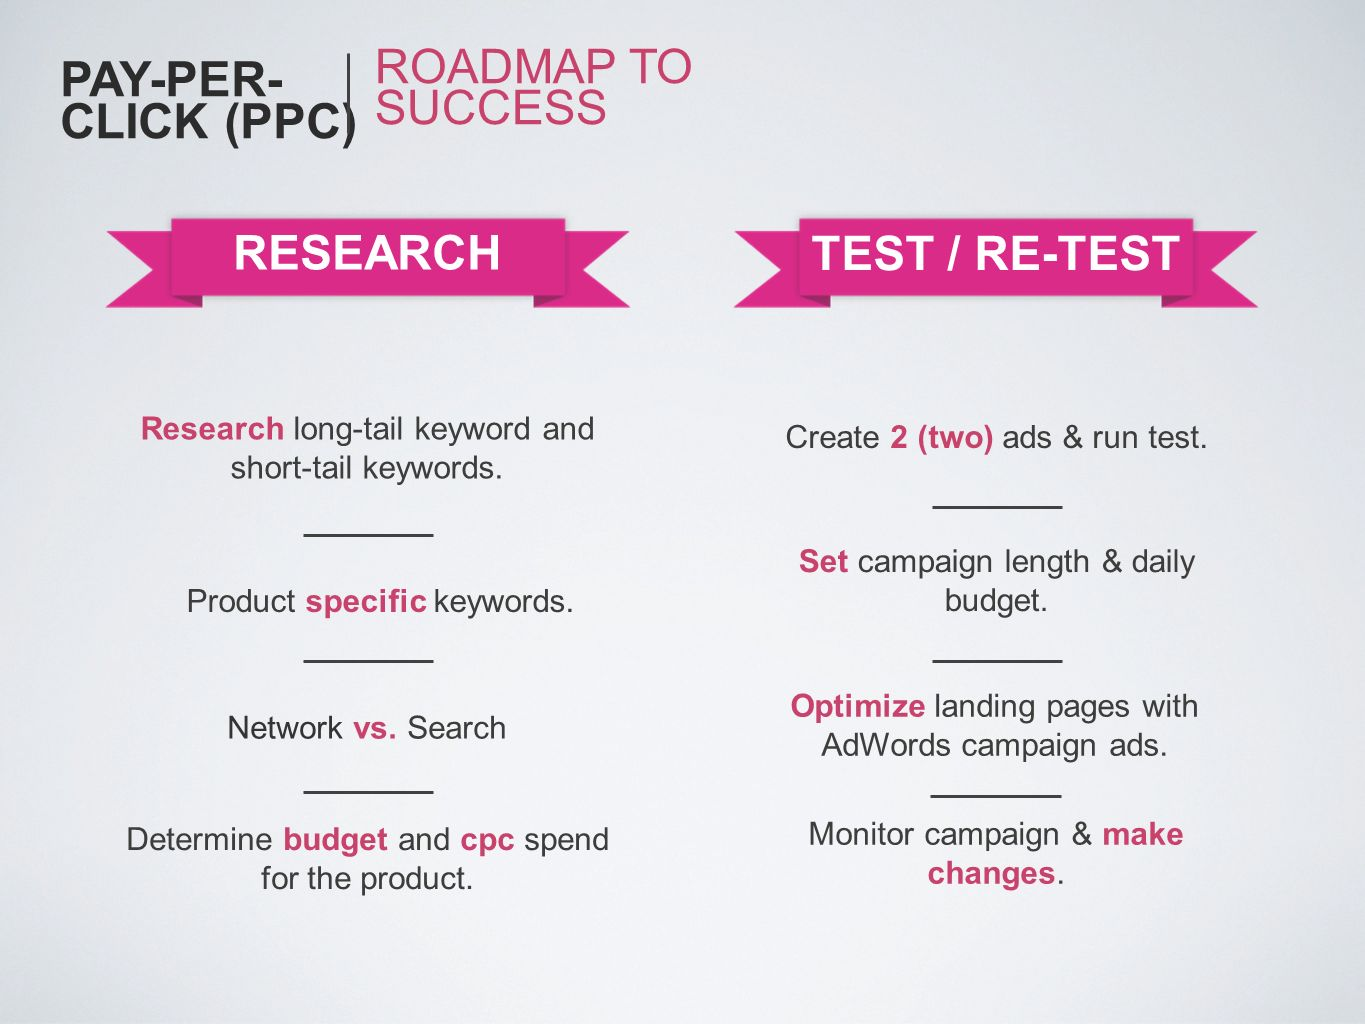 PAY-PER-CLICK (PPC) ROADMAP TO SUCCESS RESEARCH TEST / RE-TEST